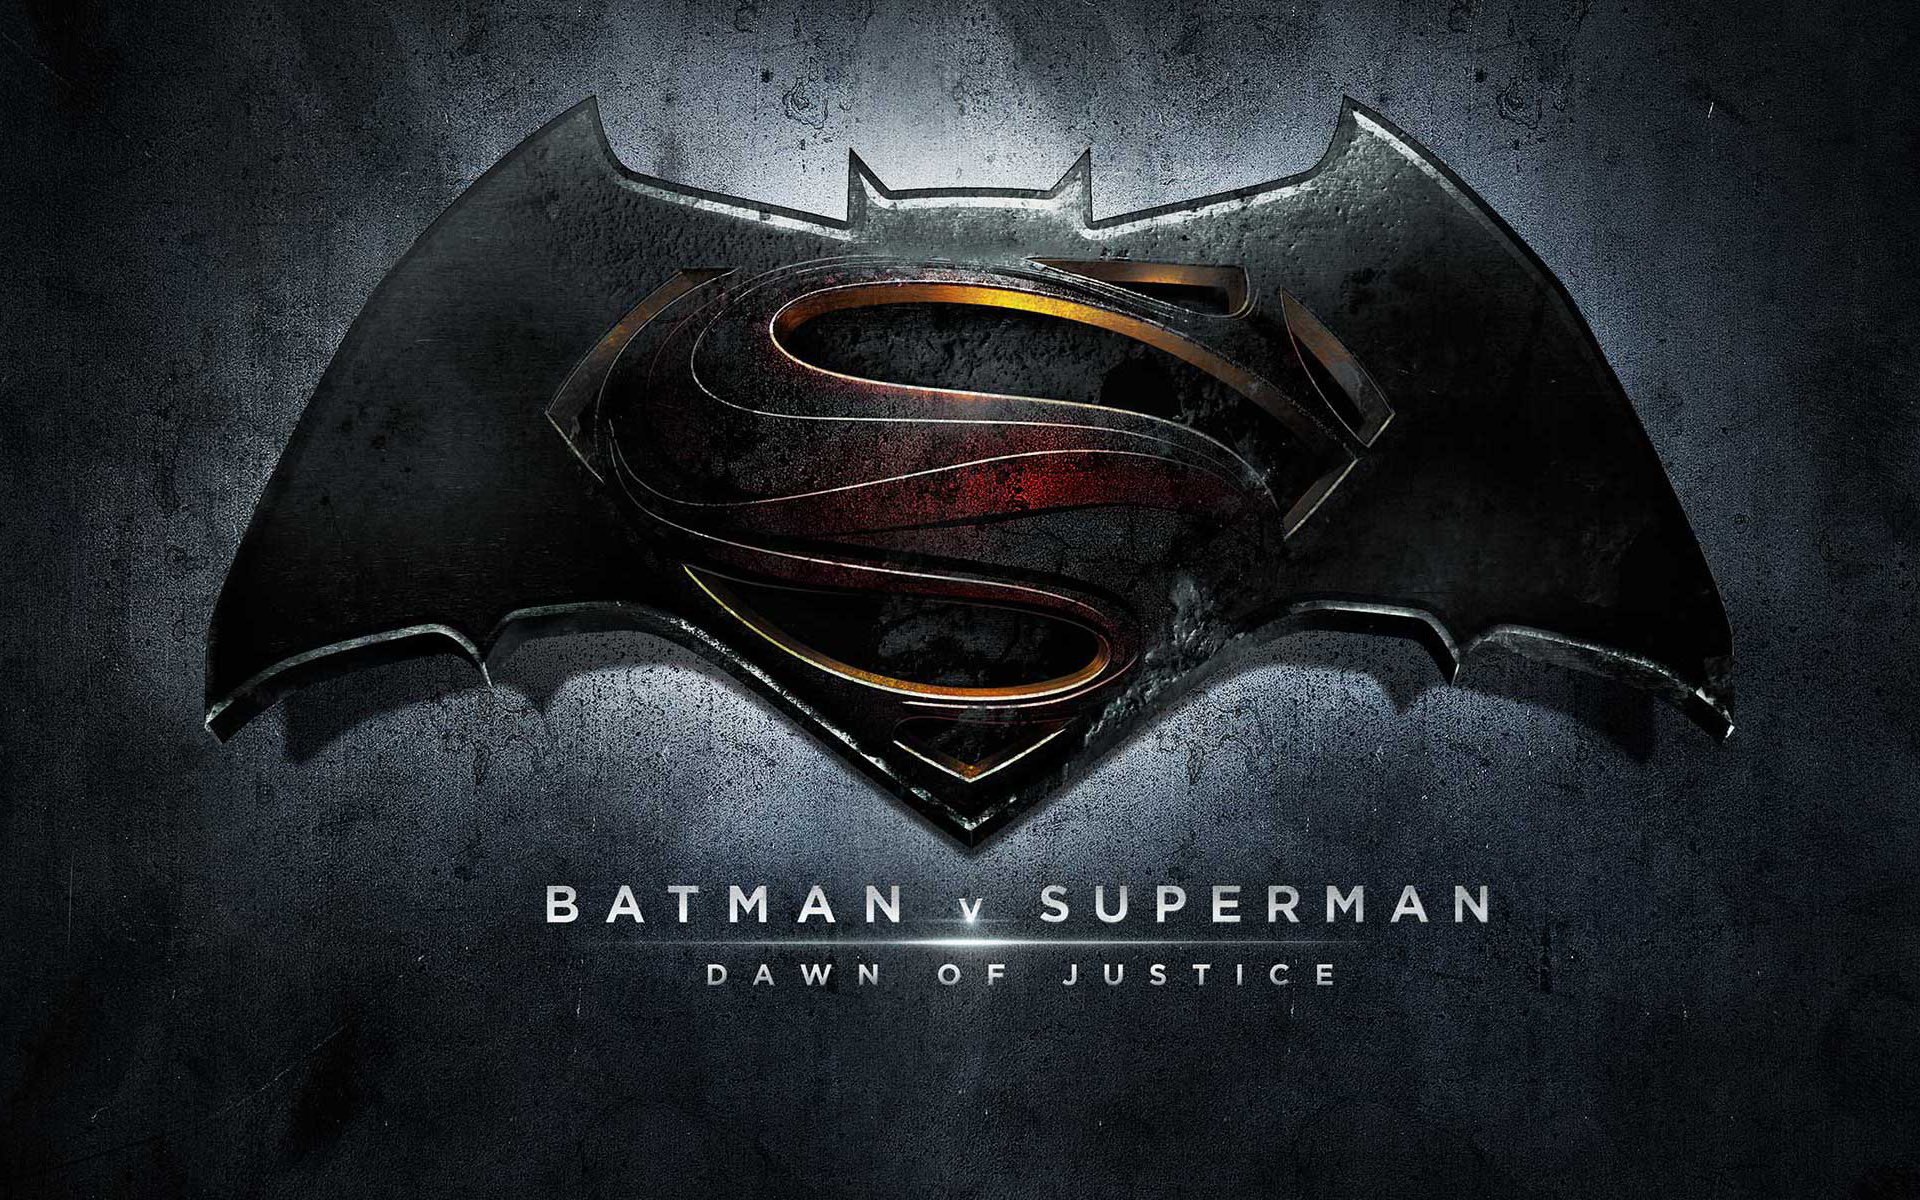 Batman vs Superman Dawn of Justice Logo Exclusive HD Wallpapers 6669 1920x1200